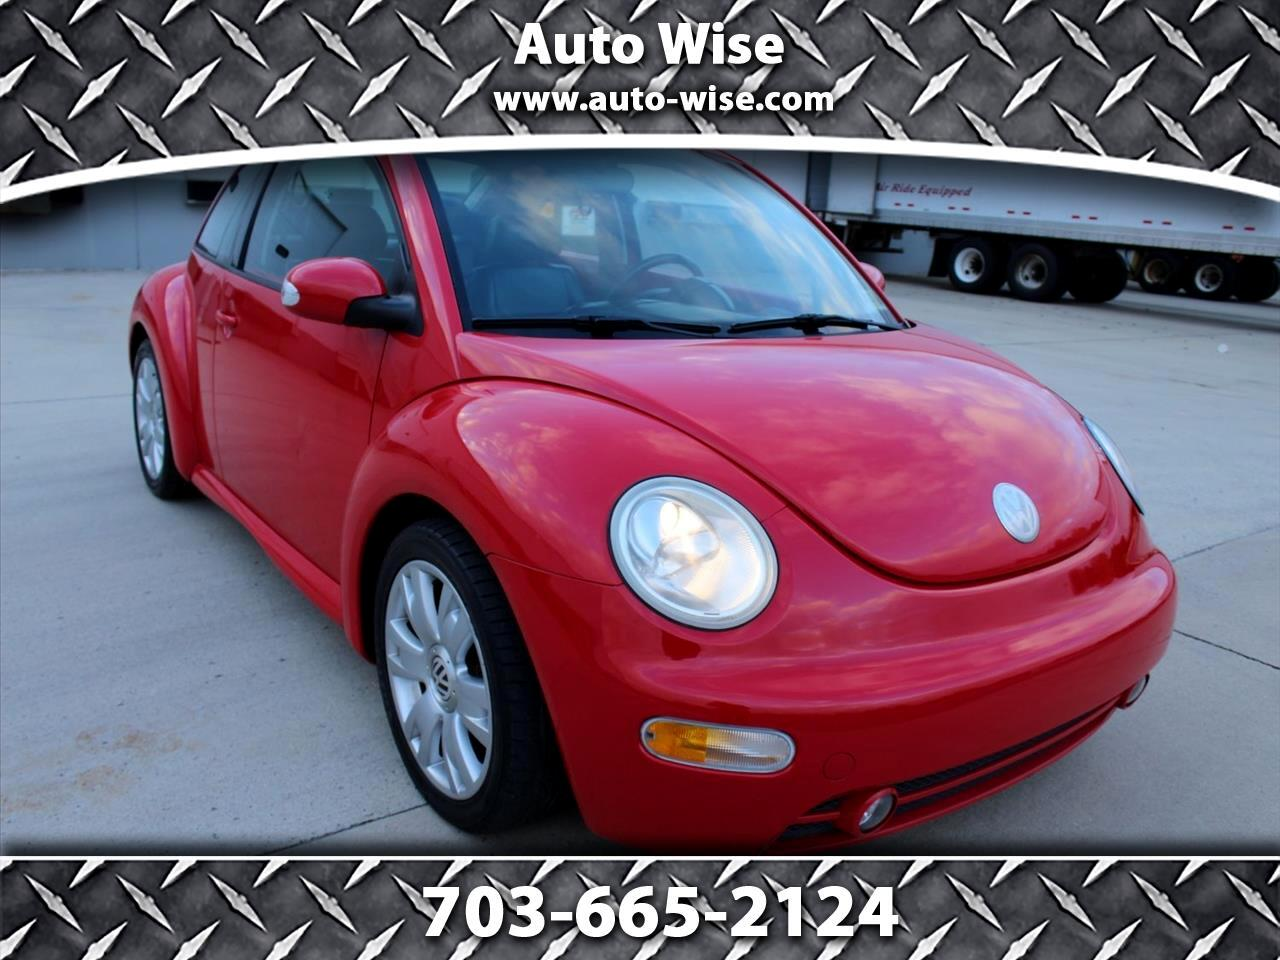 2003 Volkswagen New Beetle Coupe 2dr Cpe GLS Turbo Manual